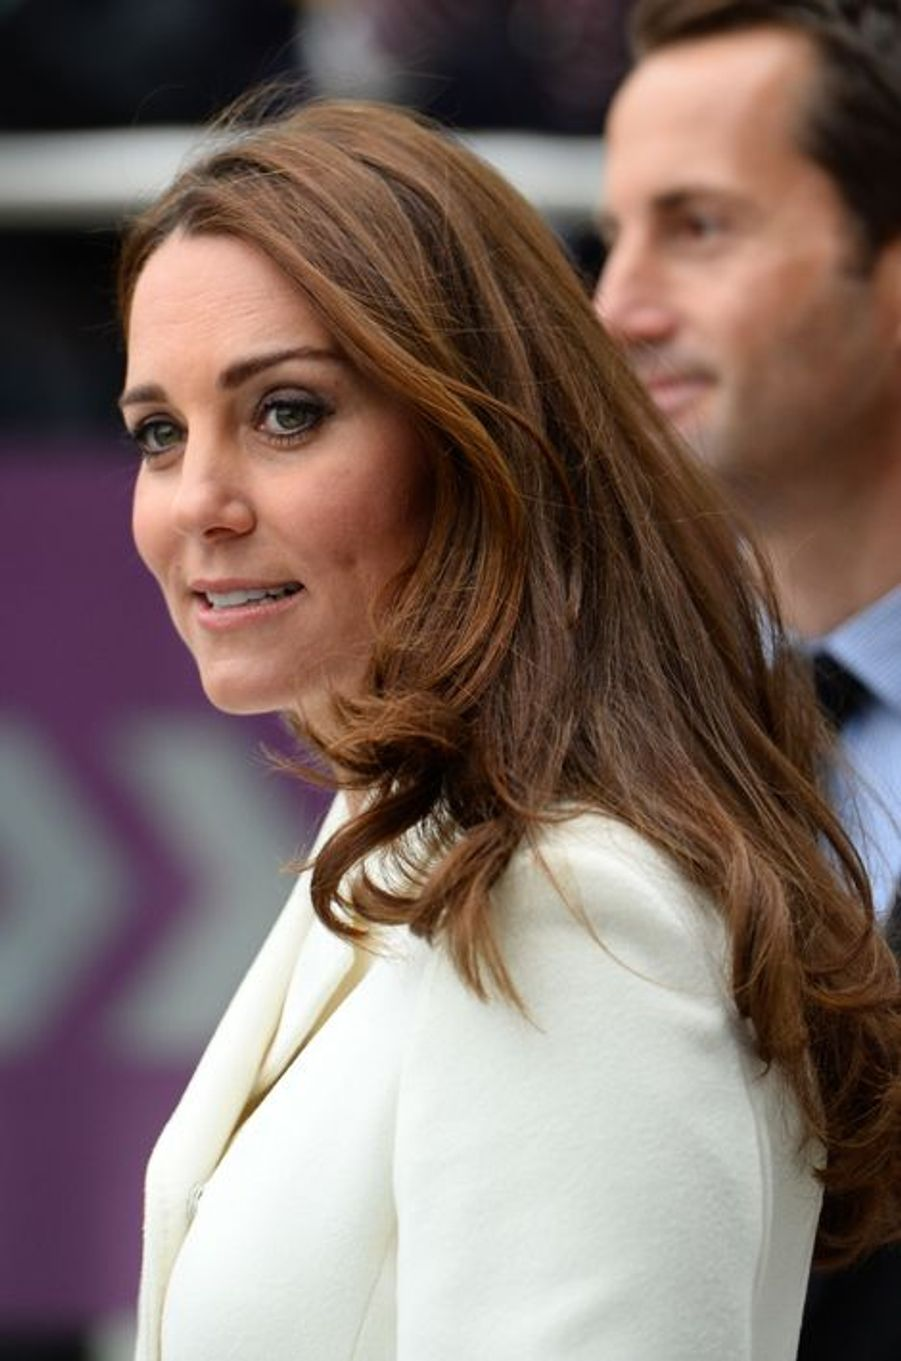 Kate ex-Middleton à Portsmouth, le 12 février 2015